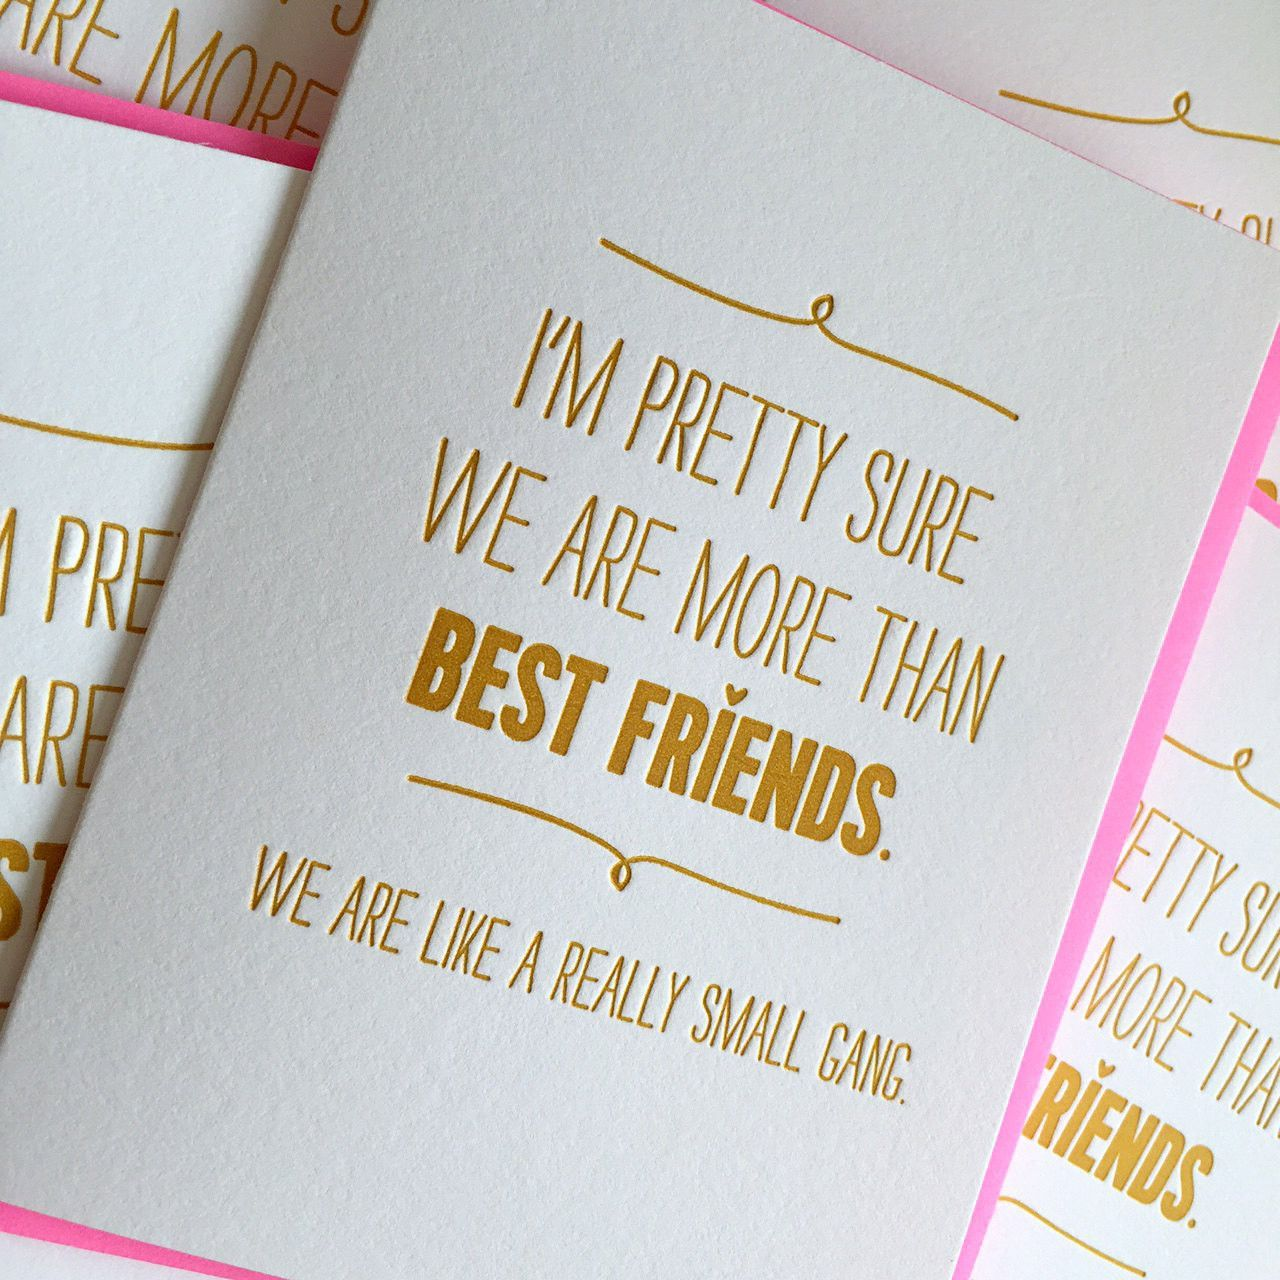 Best Friend Card - Really Small Gang | cards-misc ...